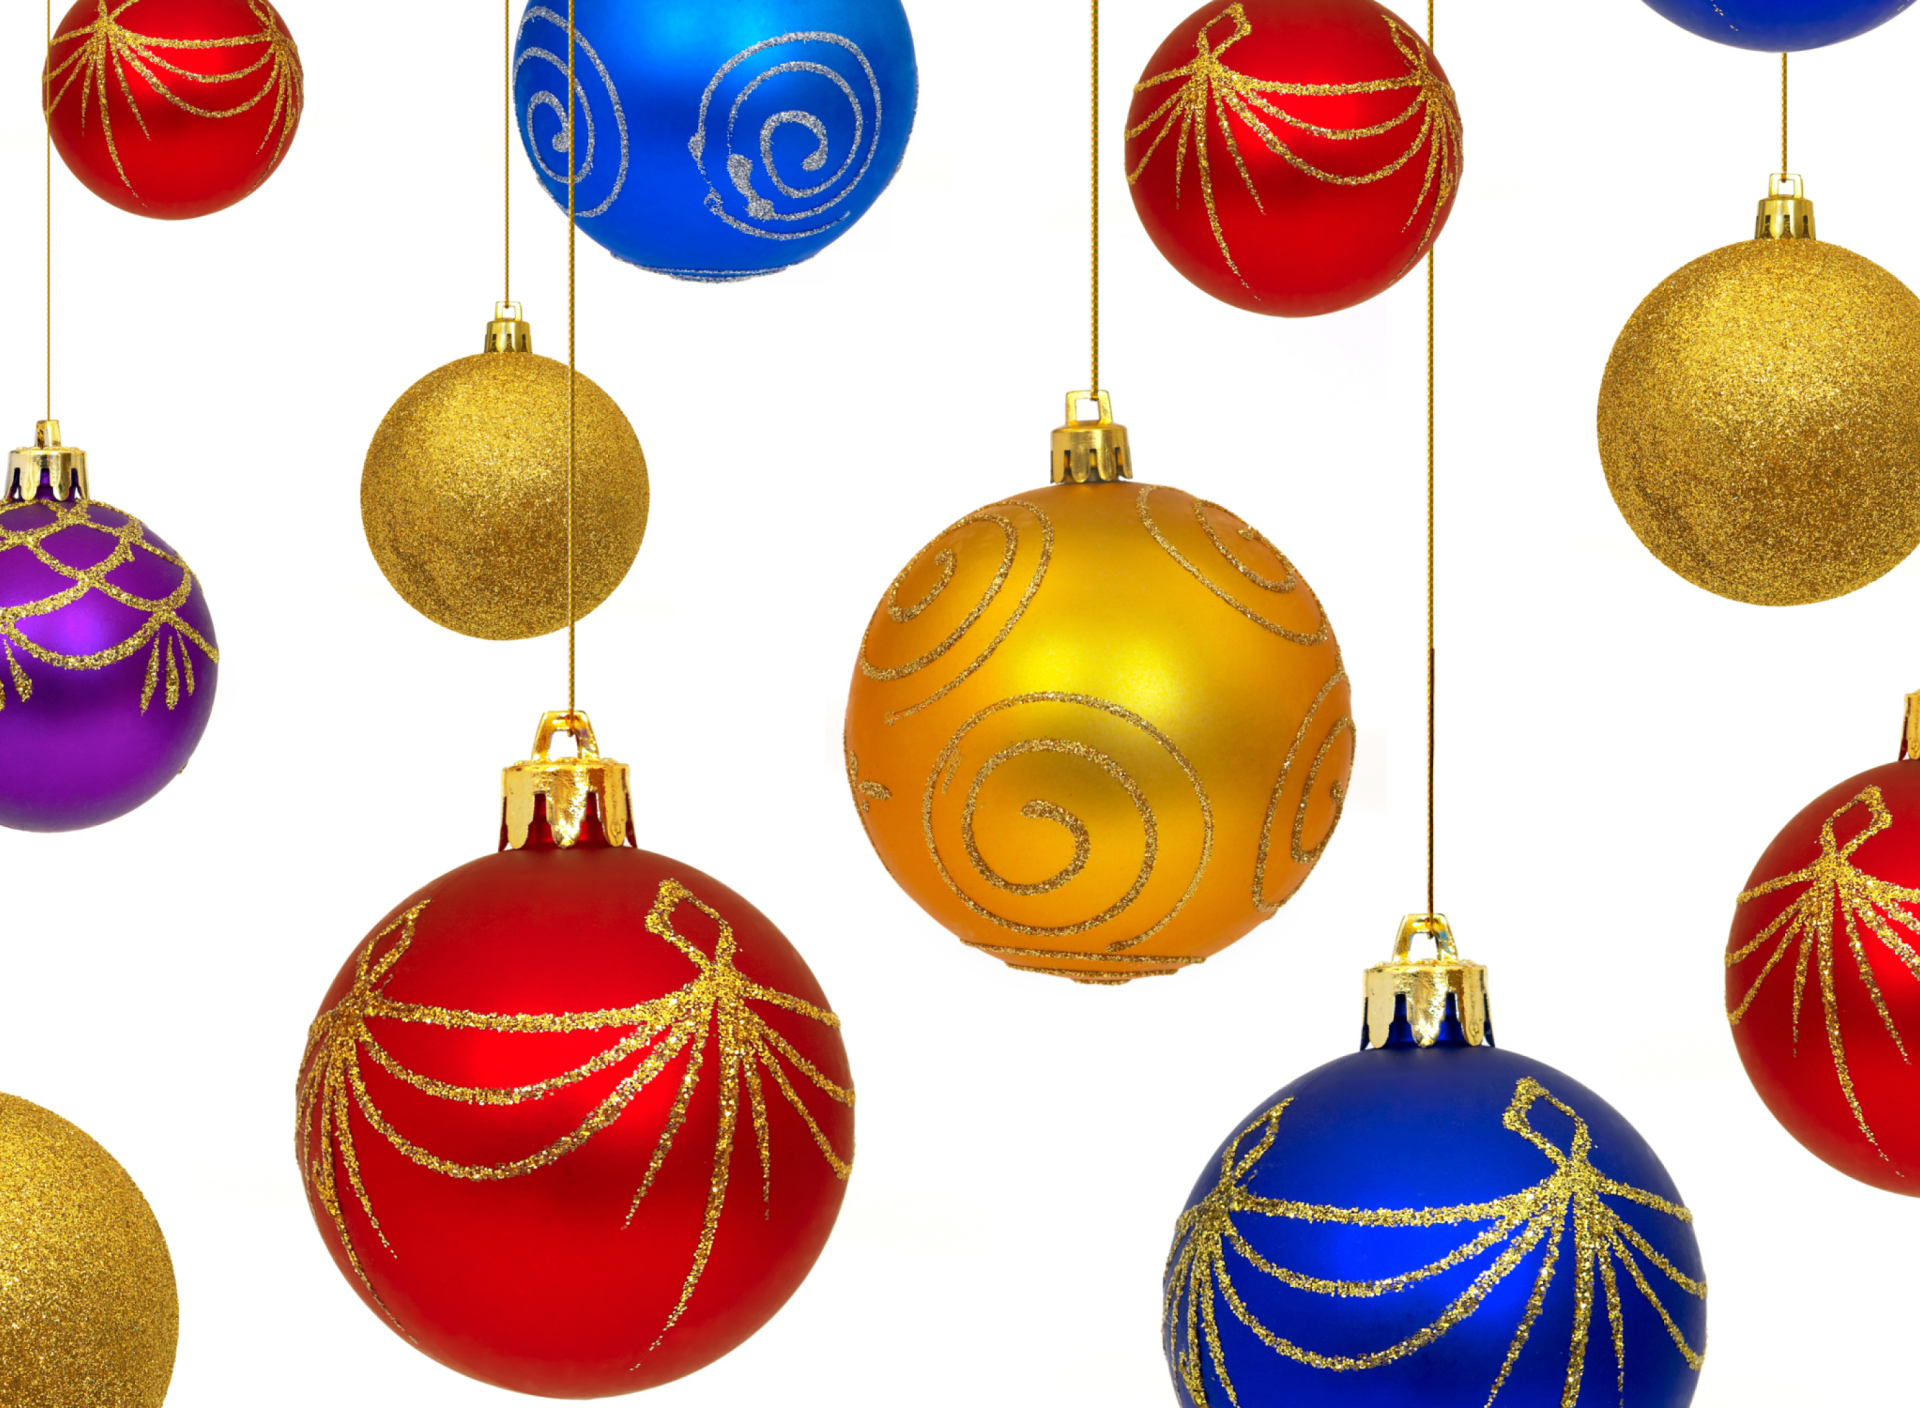 Christmas Decorations wallpaper 1920x1408